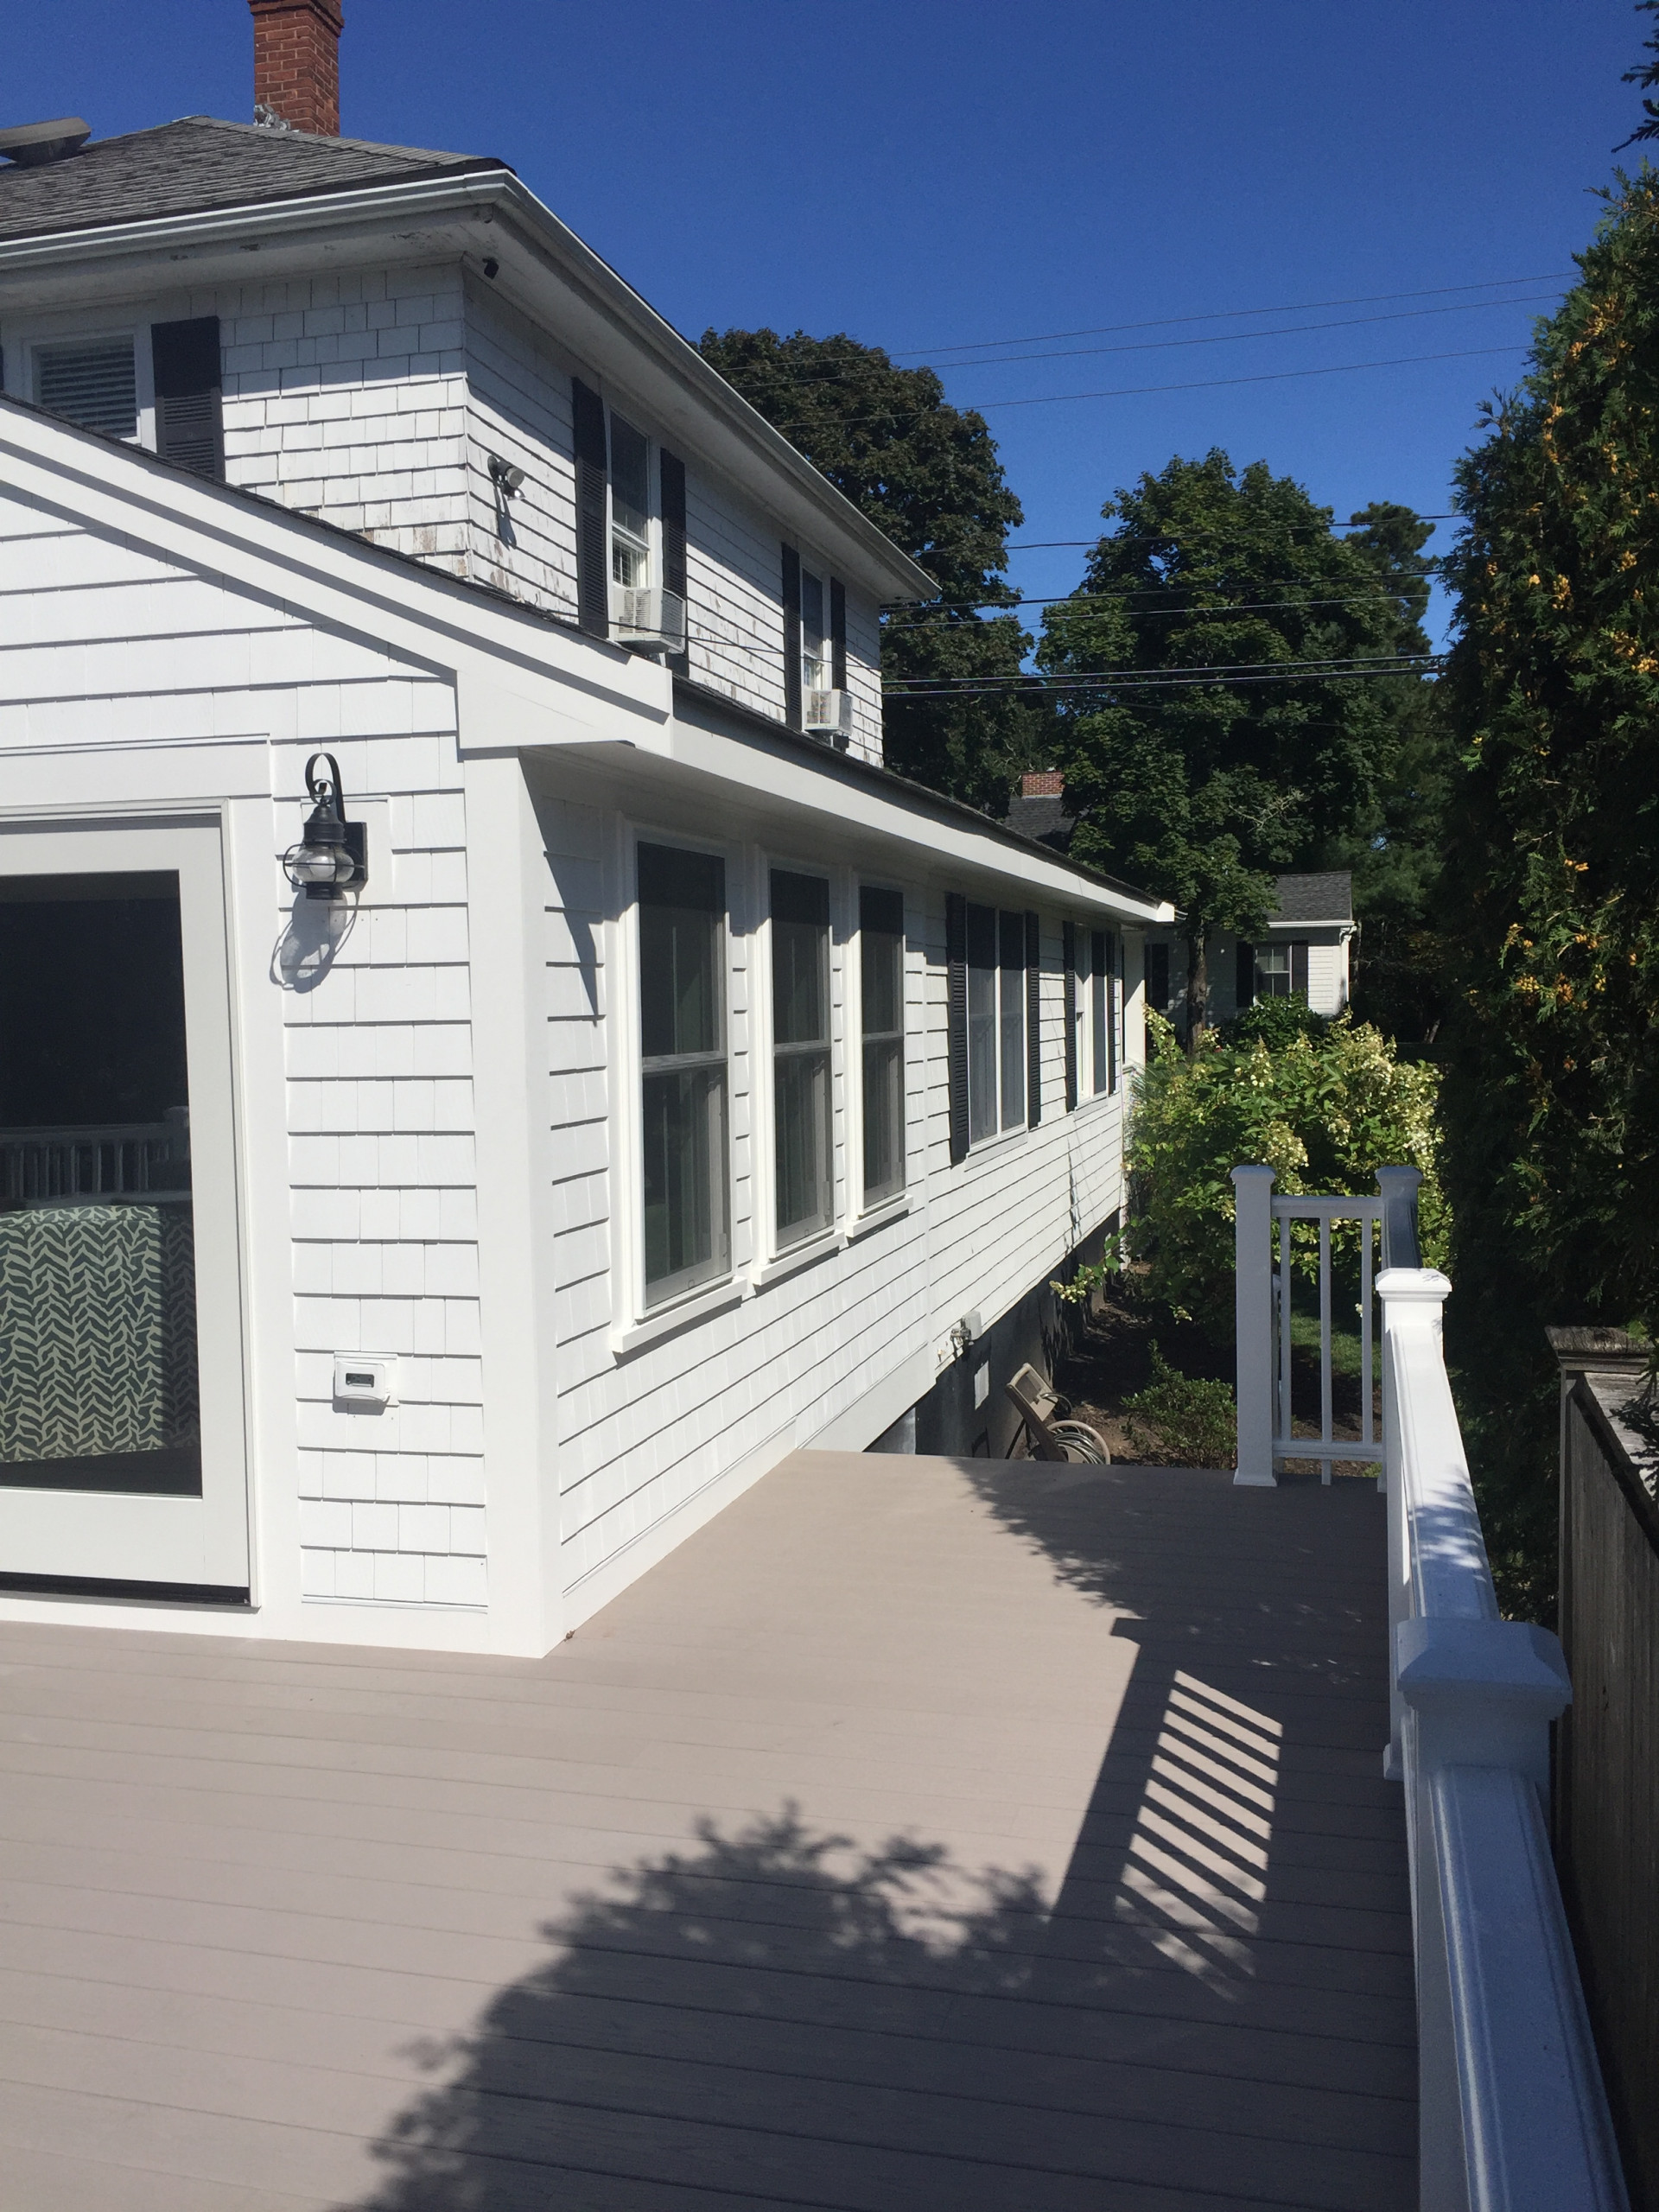 New deck and front porch for an antique home!